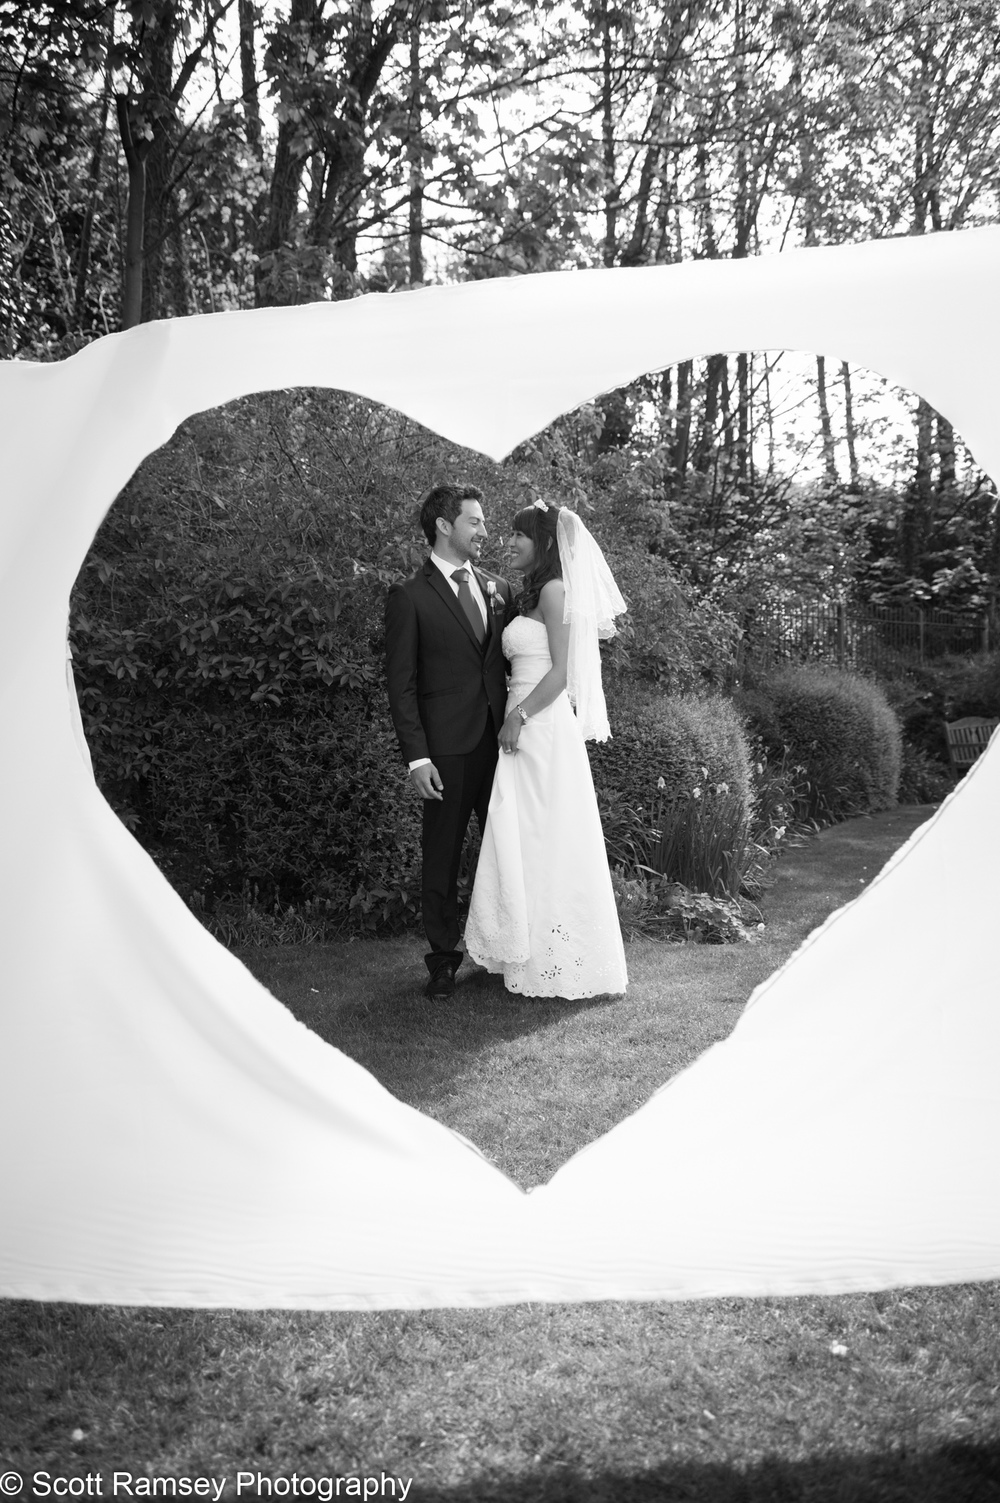 Portsmouth Registry Office Wedding. Chris and Vivien are photographed in the garden of Milldam House (Portsmouth Registry Office) in Portsmouth, Hampshire.